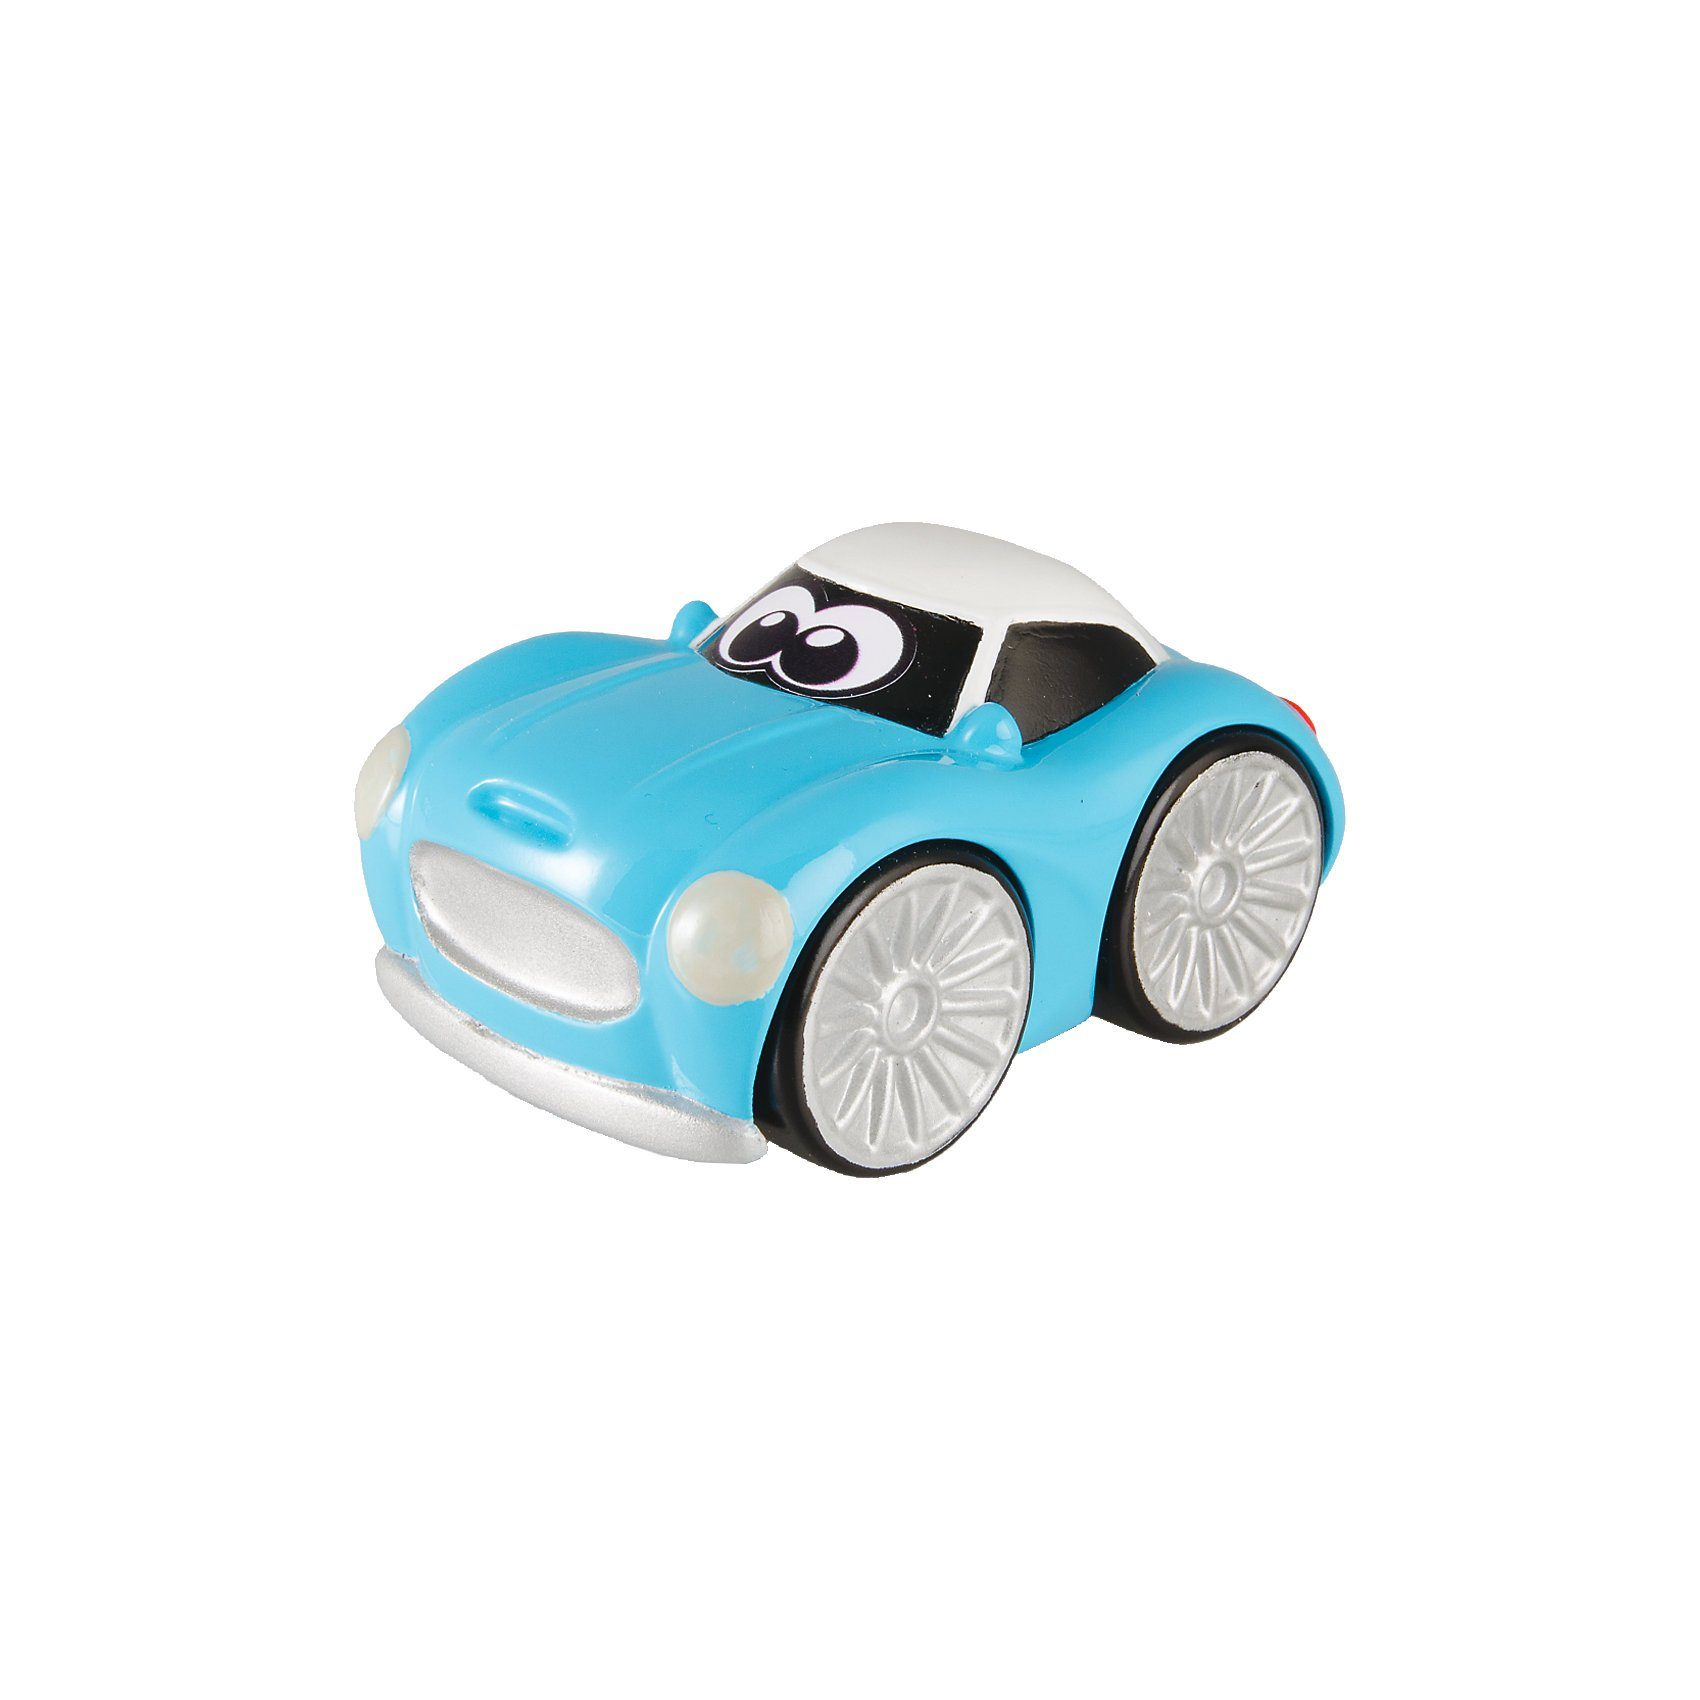 CHICCO Stunt Auto Old Stevie, blau